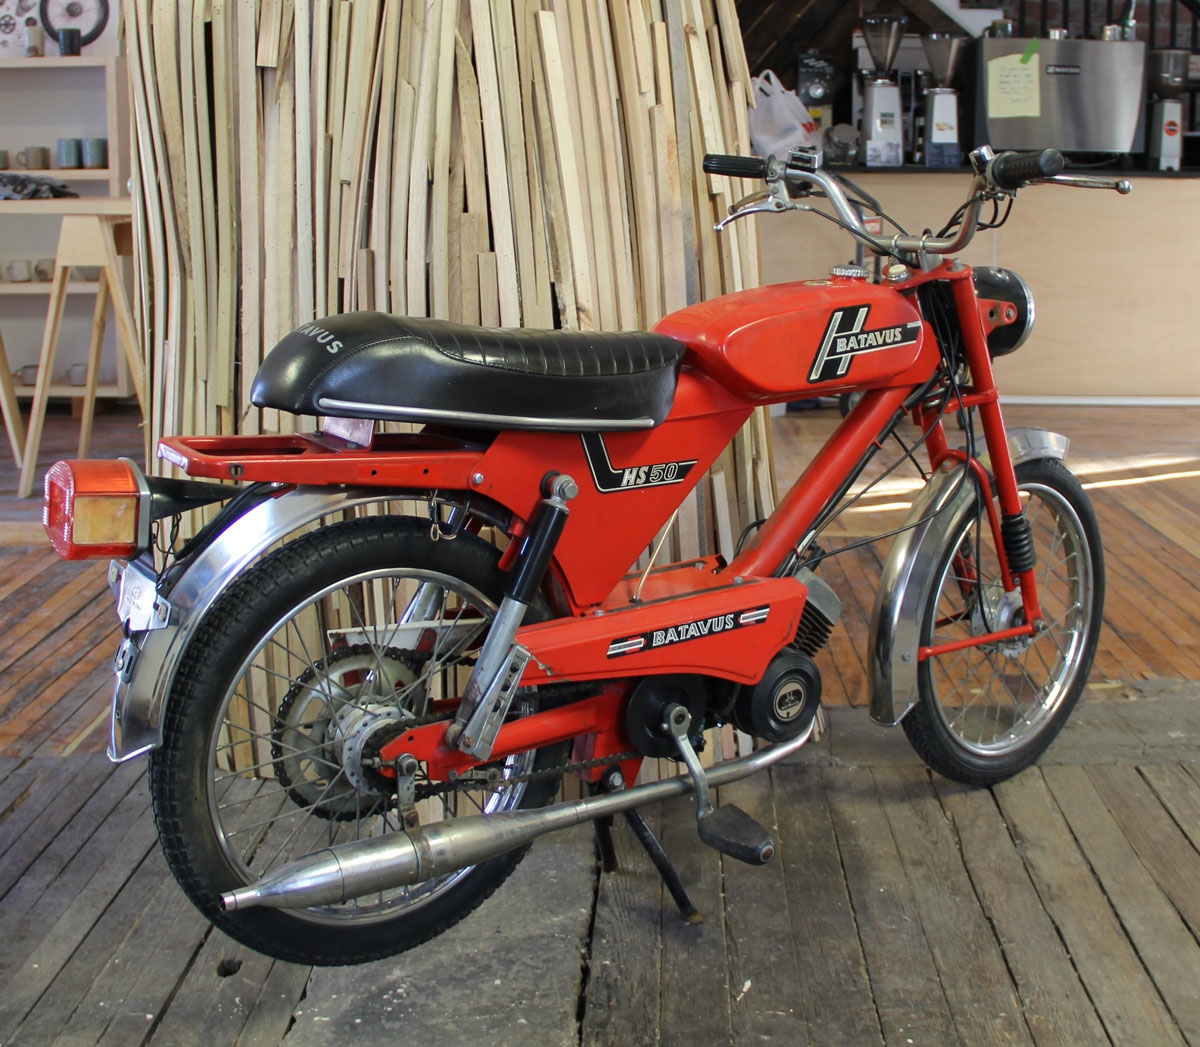 Batavus Hs50 Top Tank Moped